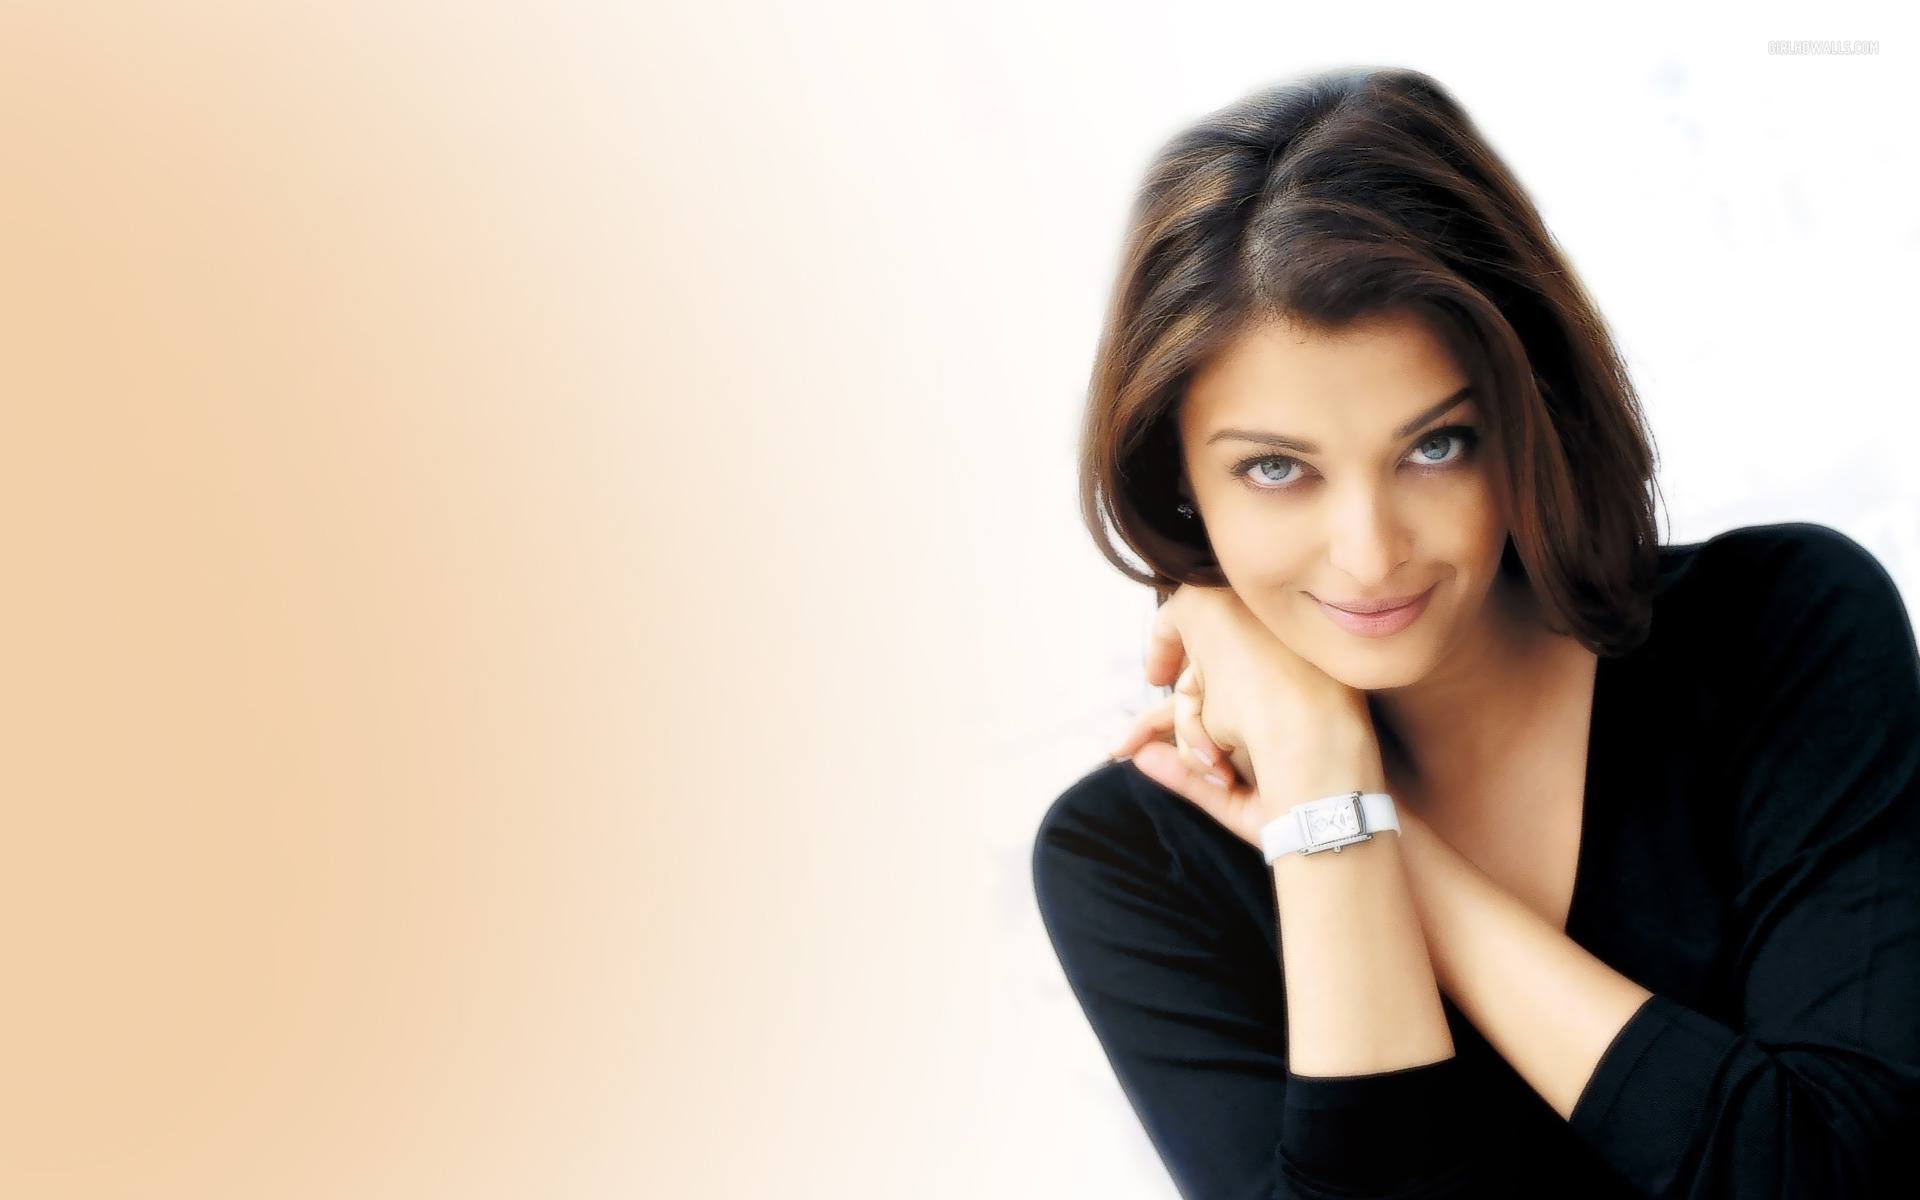 aishwarya_rai-wallpaper_2147483653